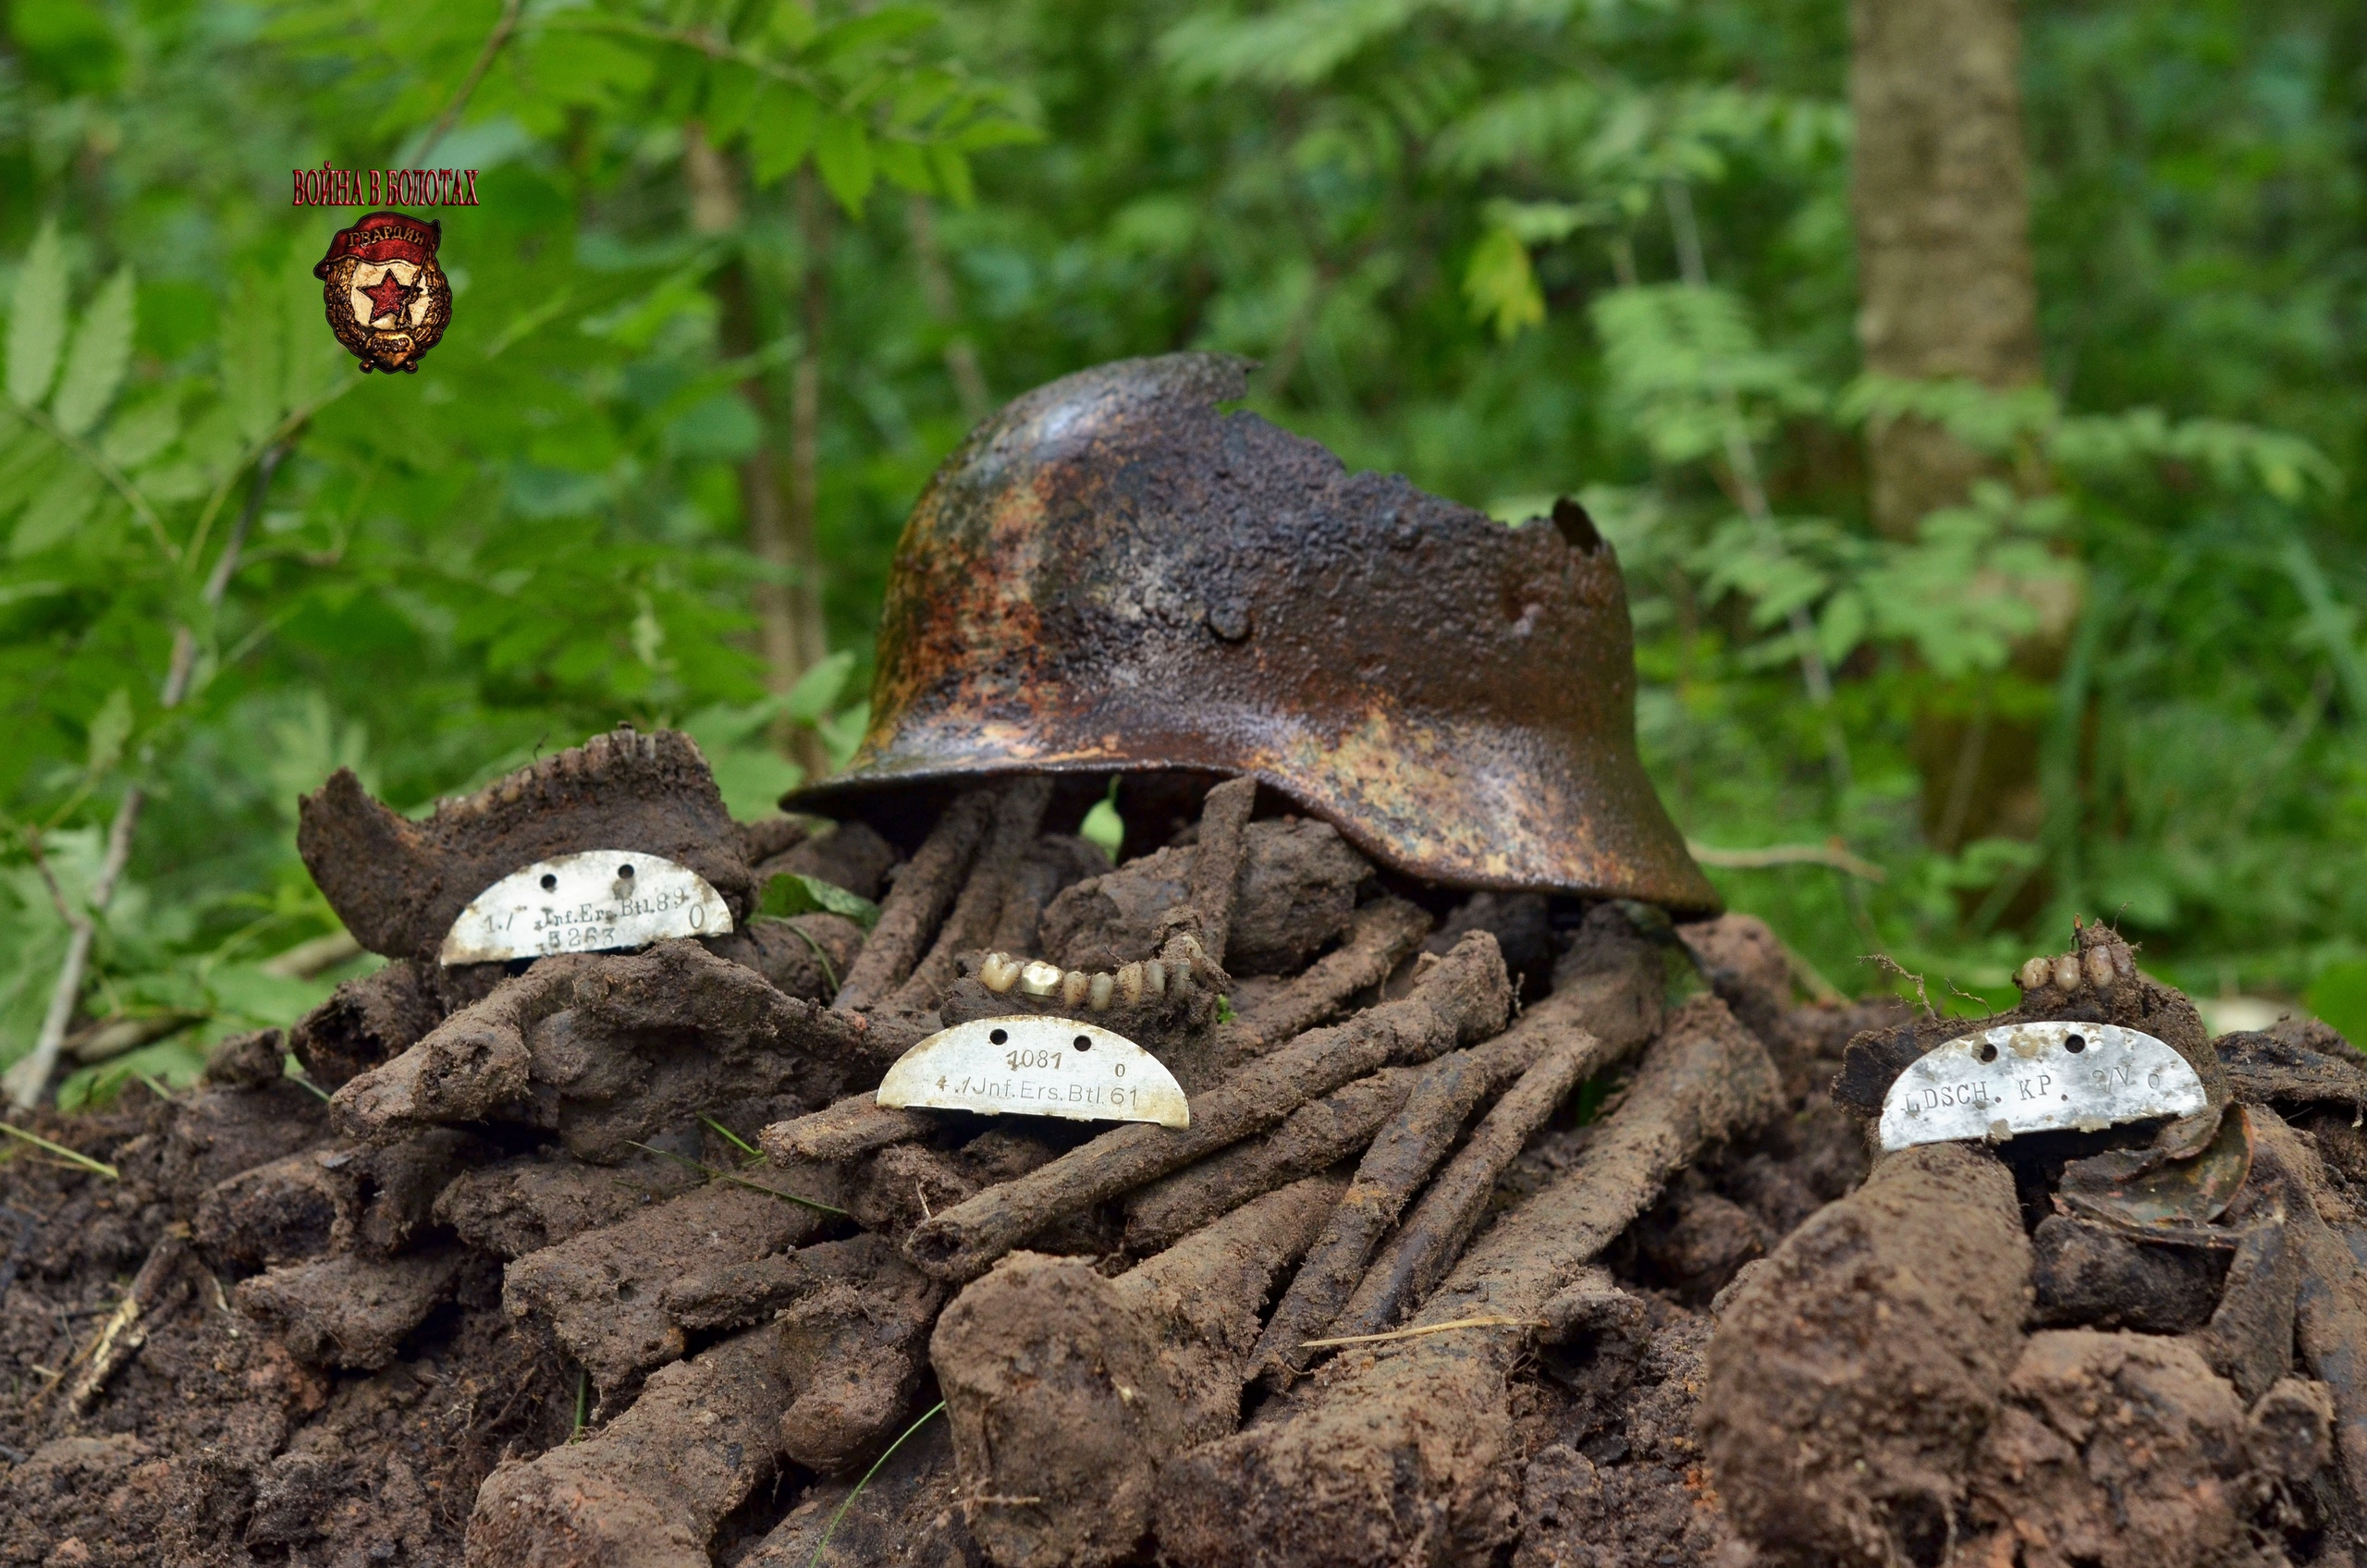 Remains of soldiers of the Wehrmacht army.